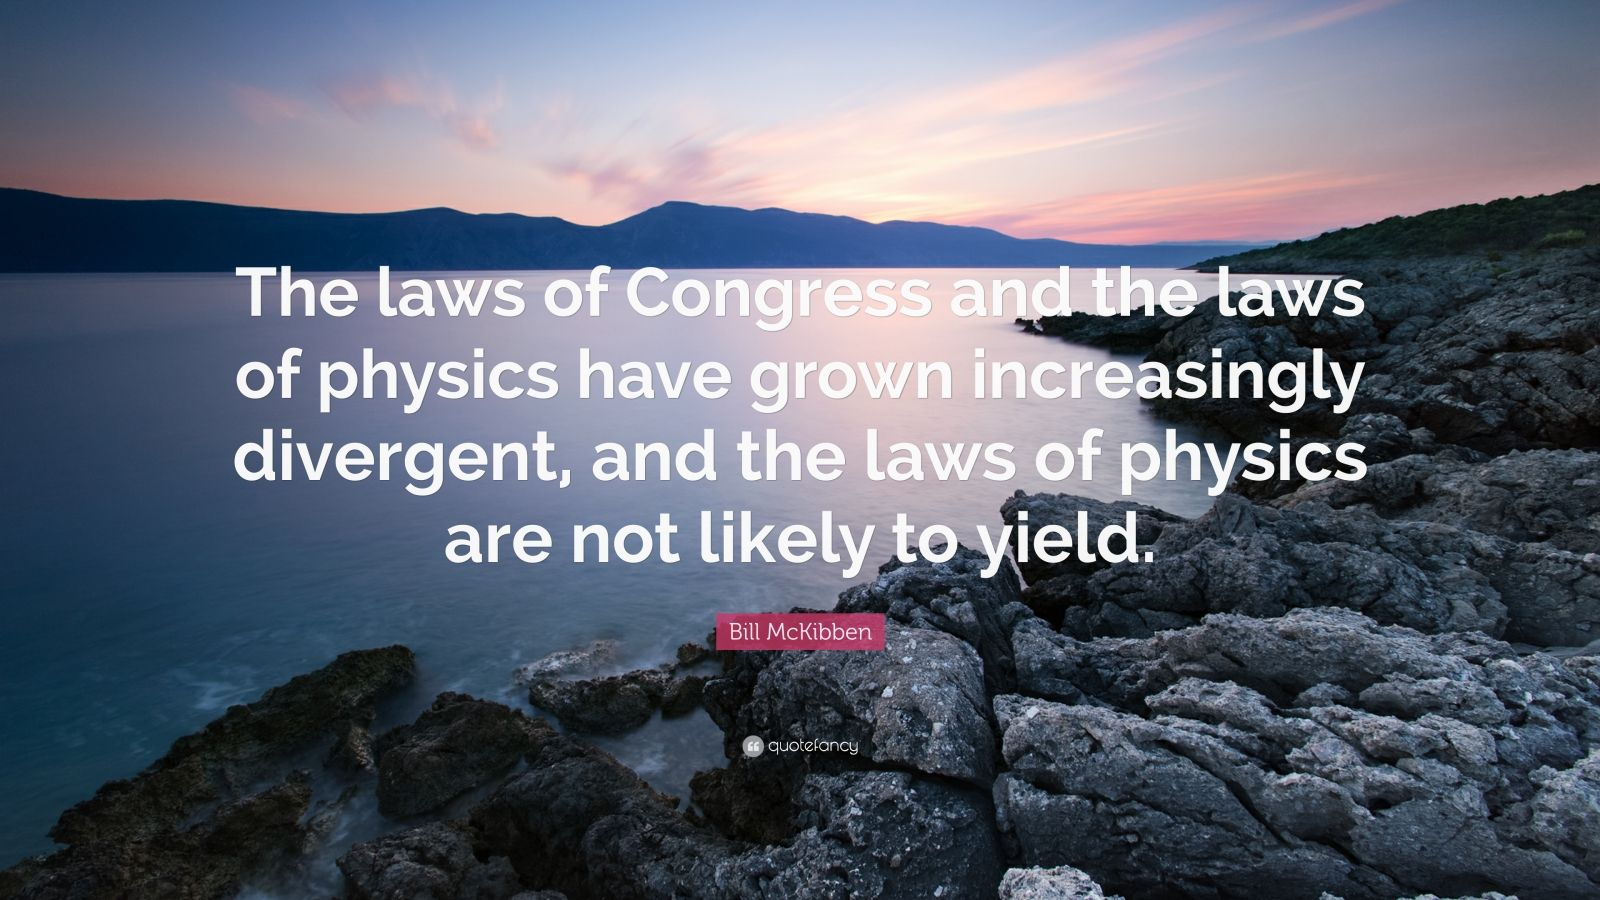 """Bill McKibben Quote: """"The laws of Congress and the laws of physics have grown increasingly divergent, and the laws of physics are not likely to yield."""""""